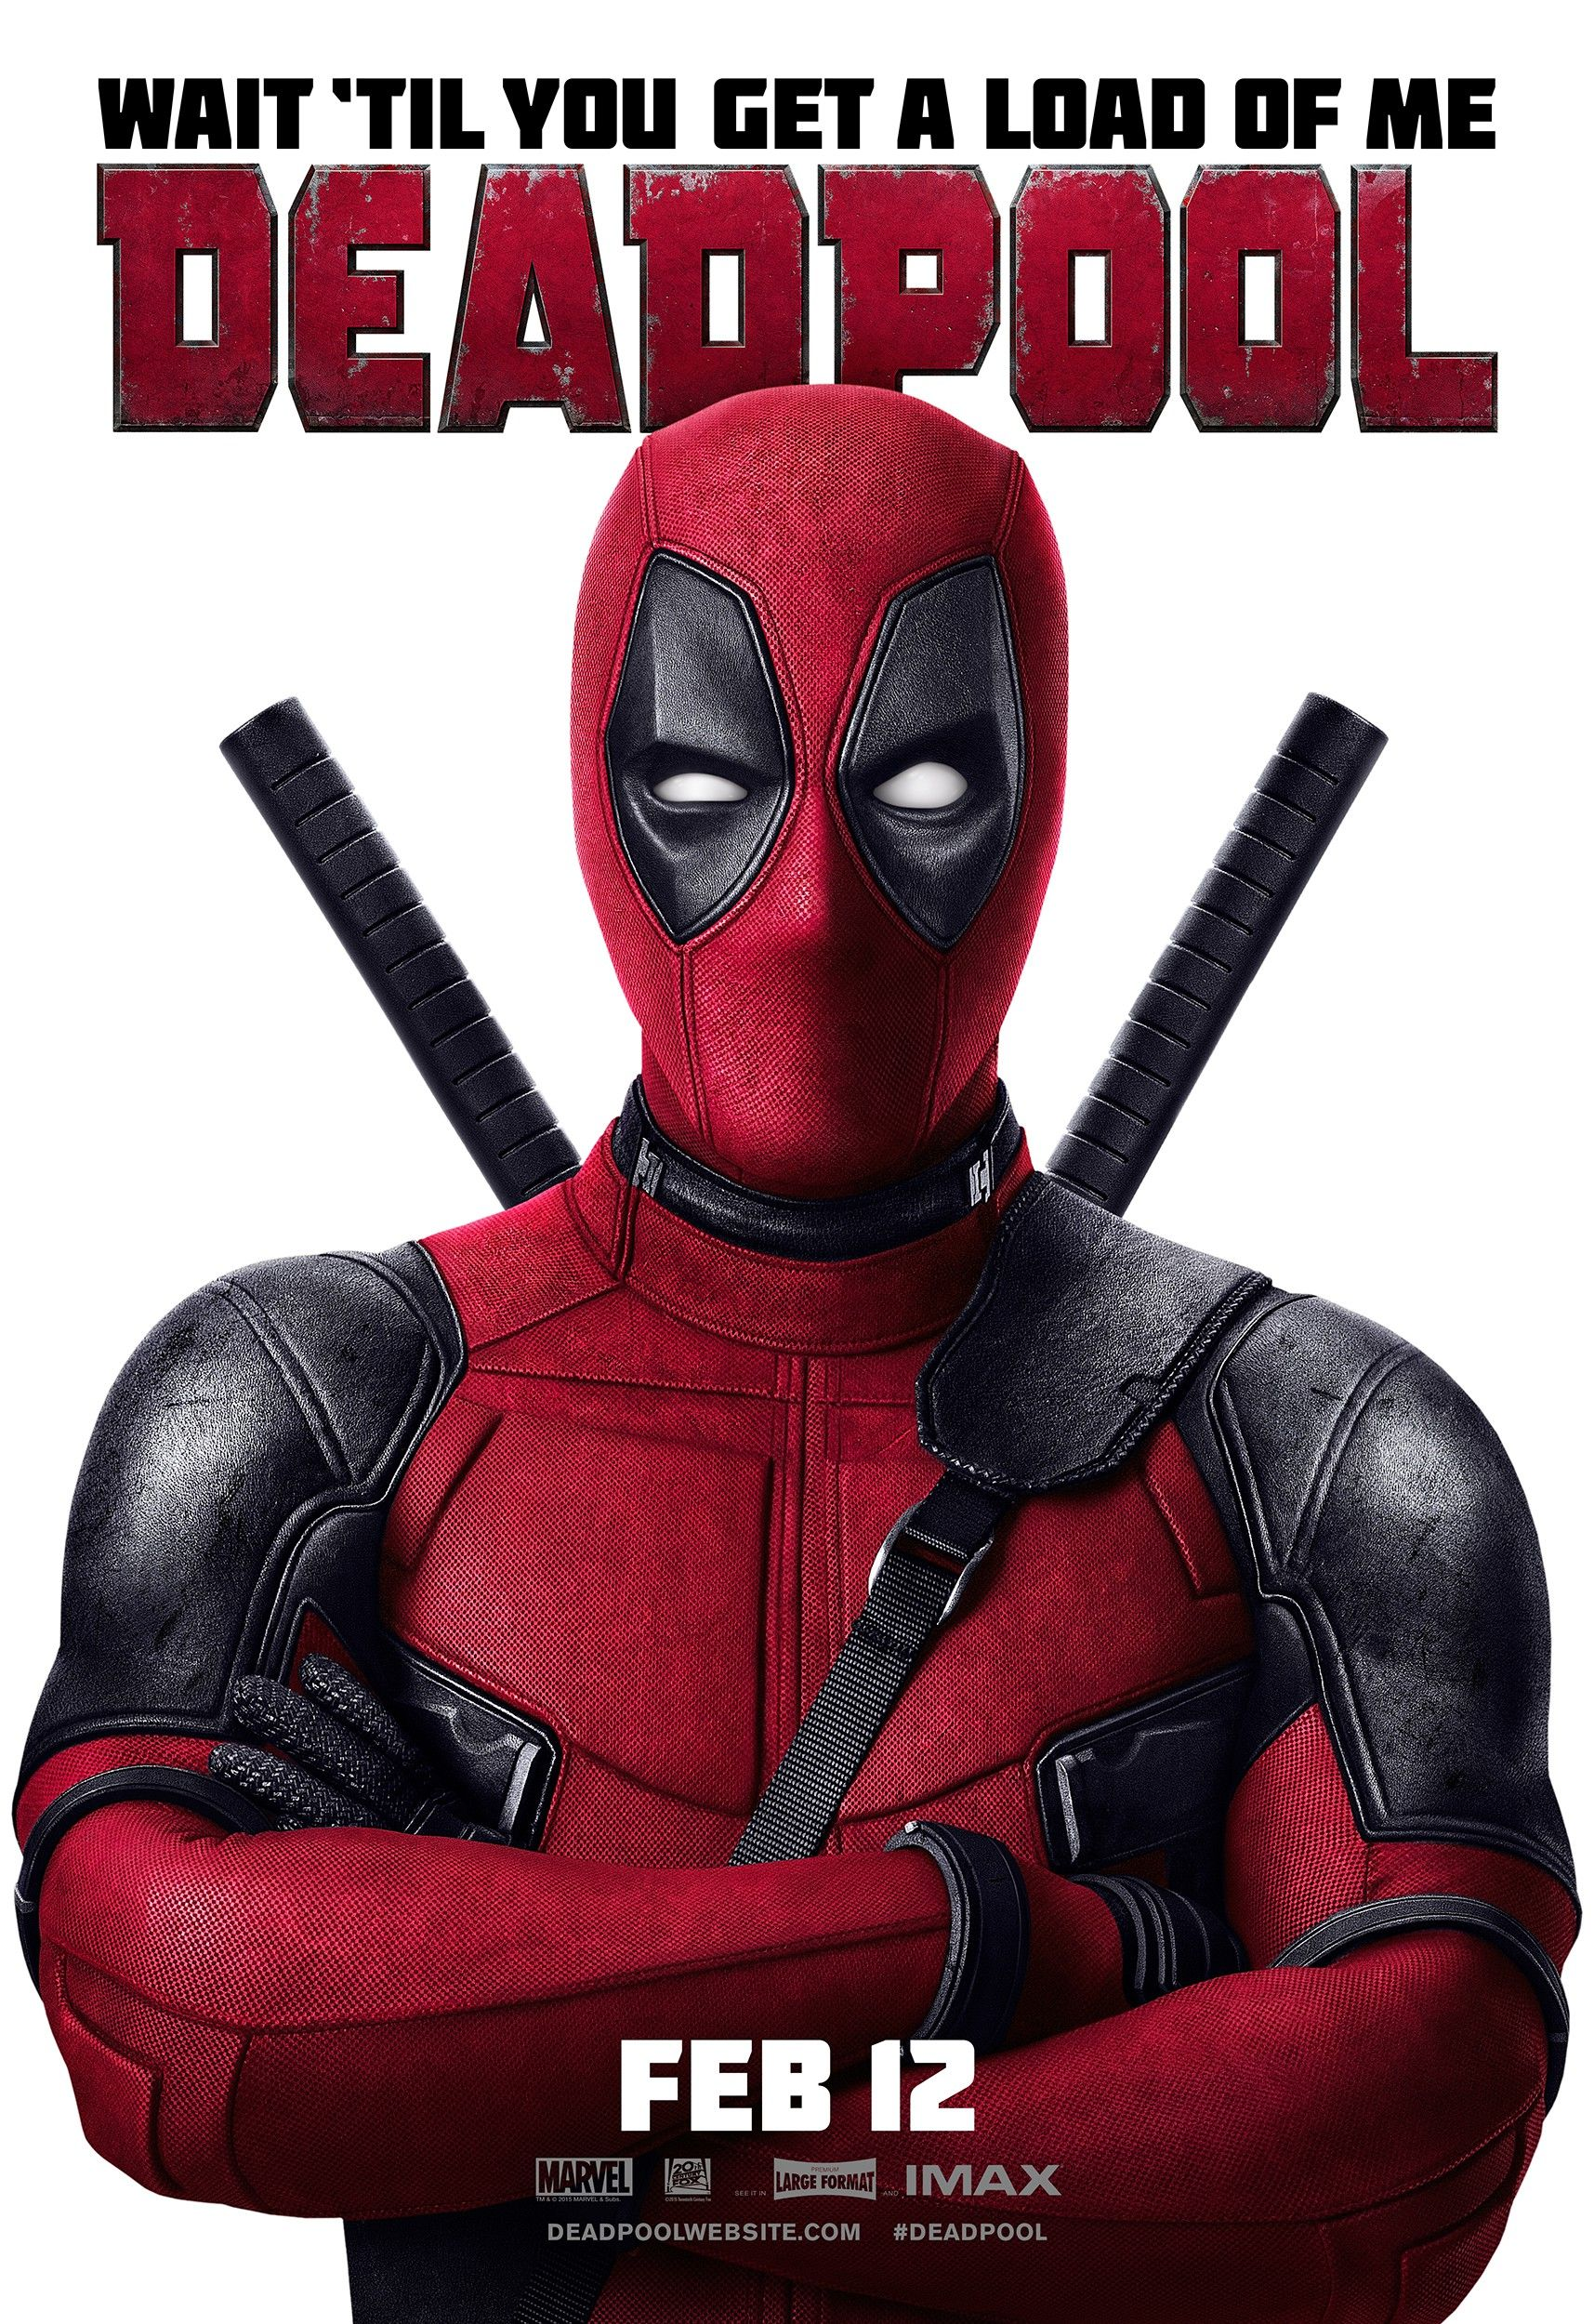 Return to the main poster page for Deadpool (#10 of 15)